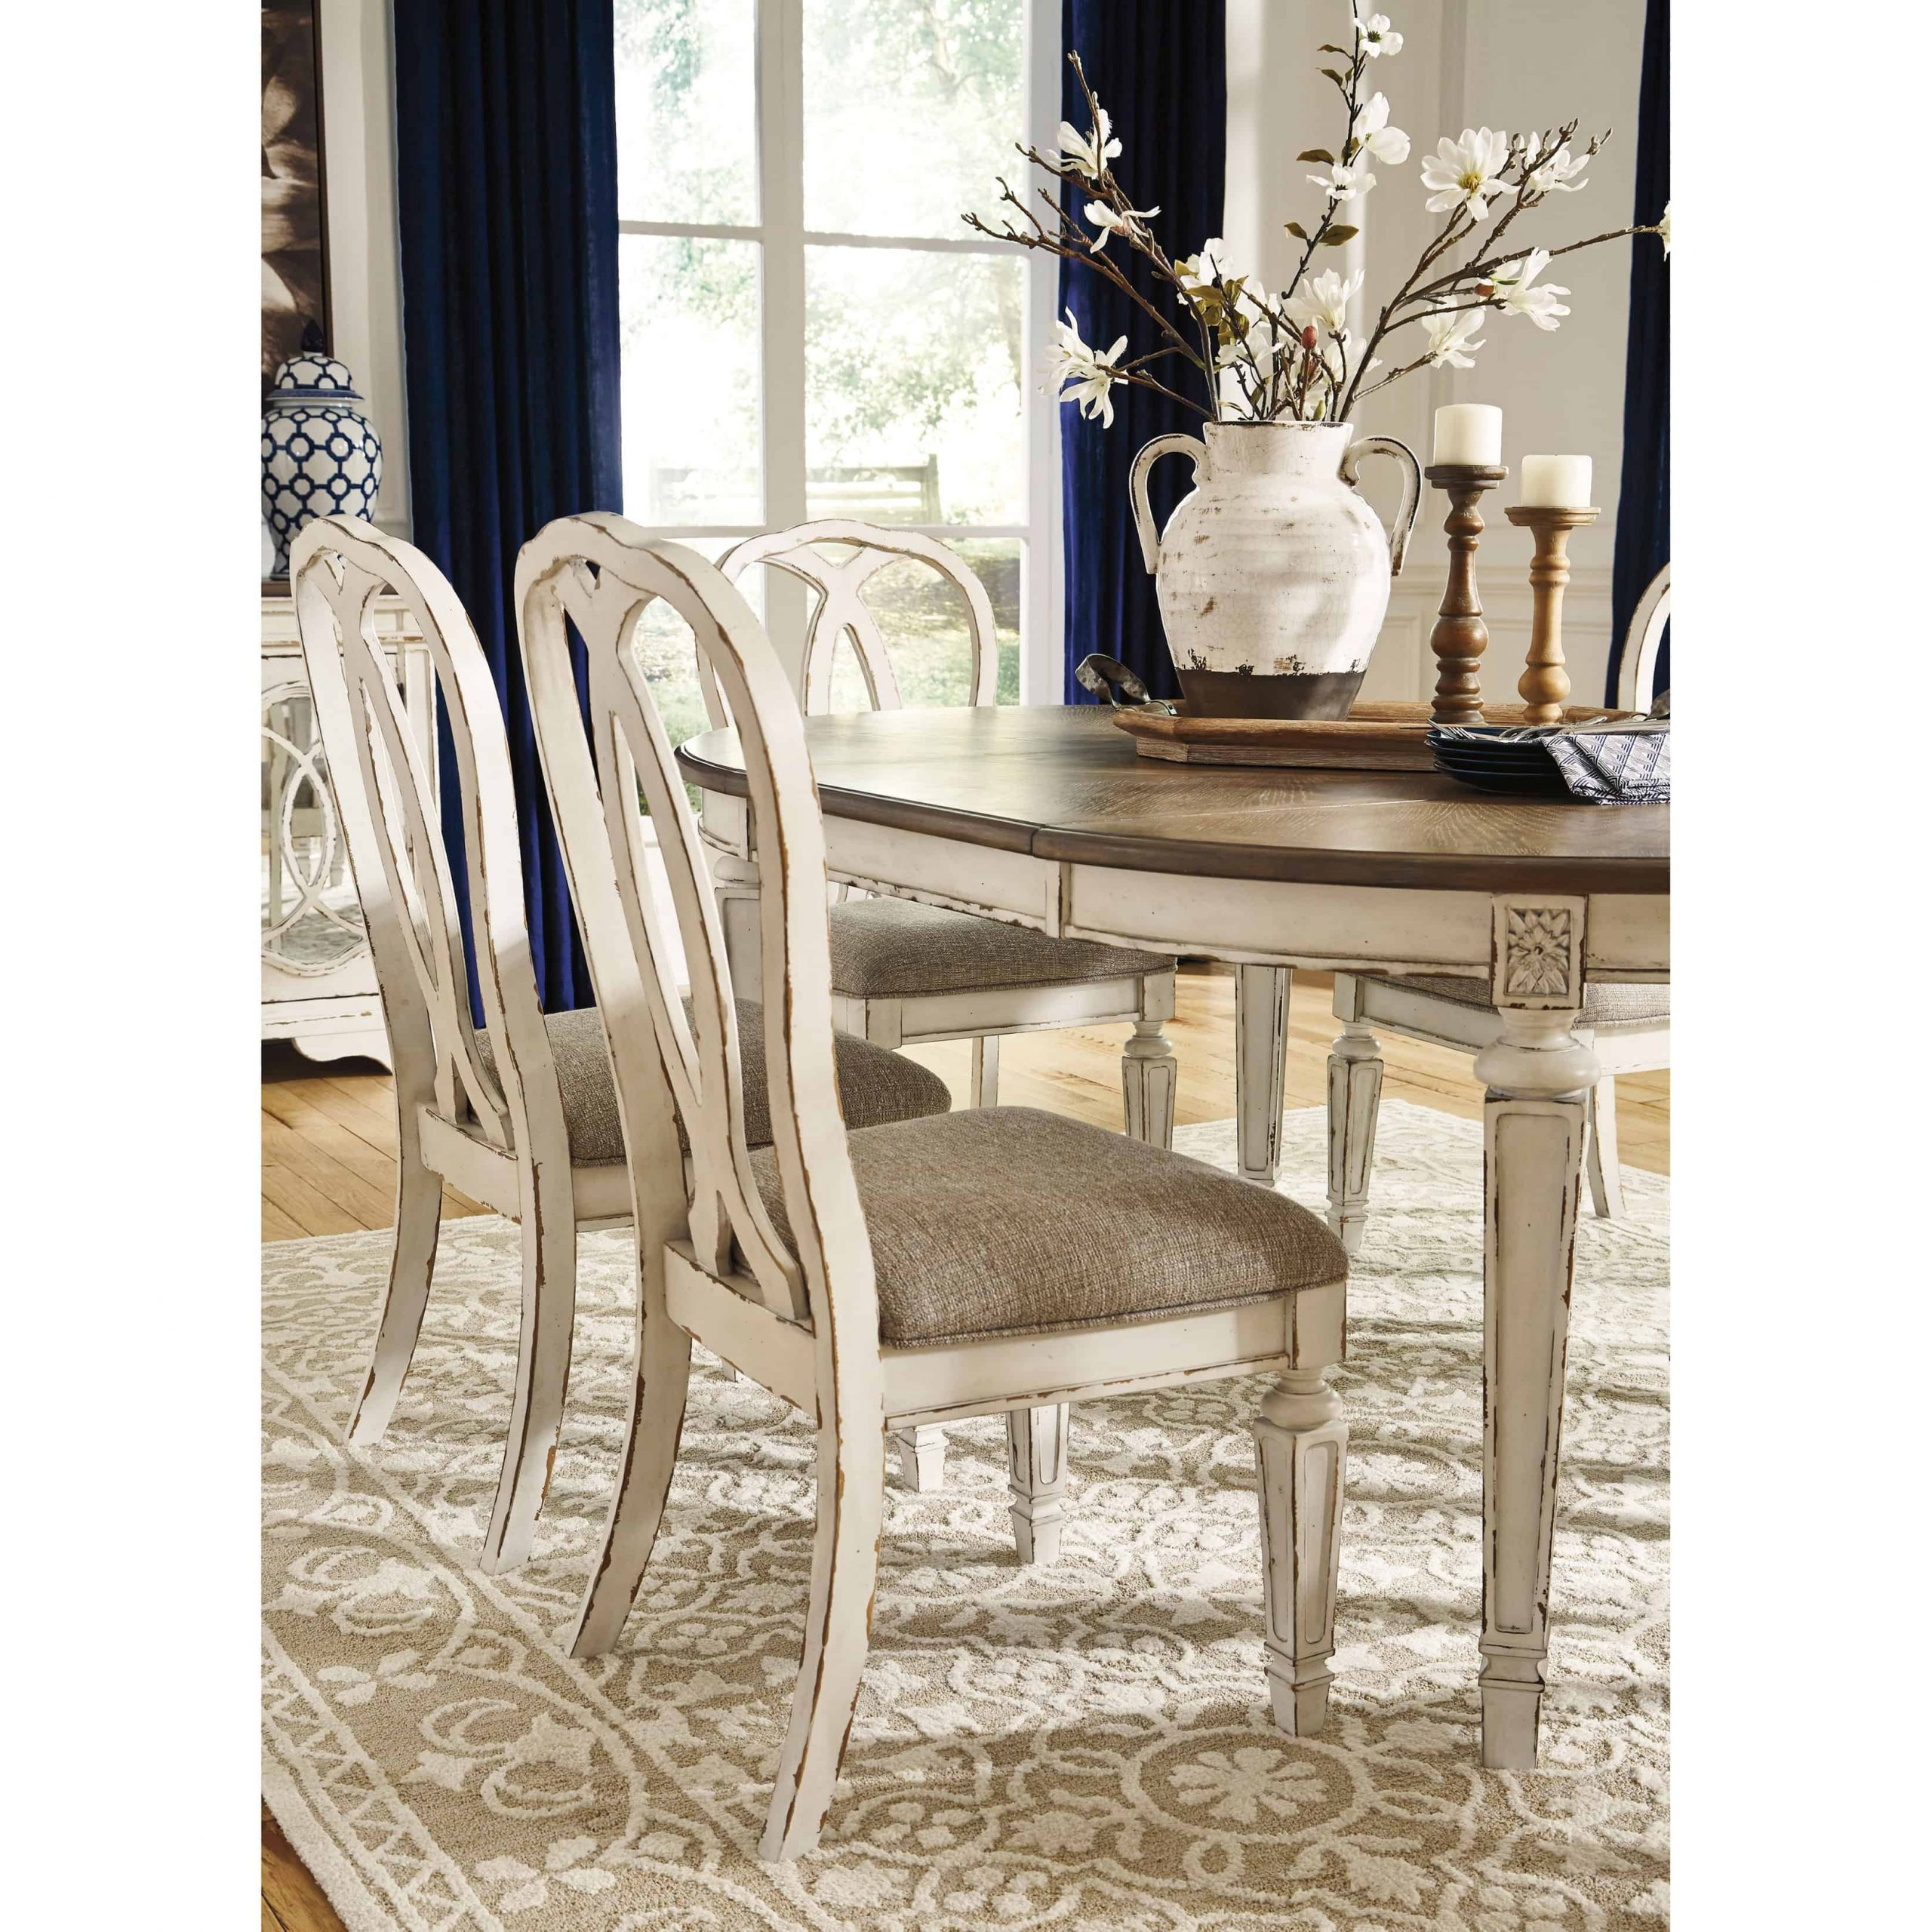 Realyn Oval Dining Room Extension Table | Furnishmyhome (View 14 of 15)